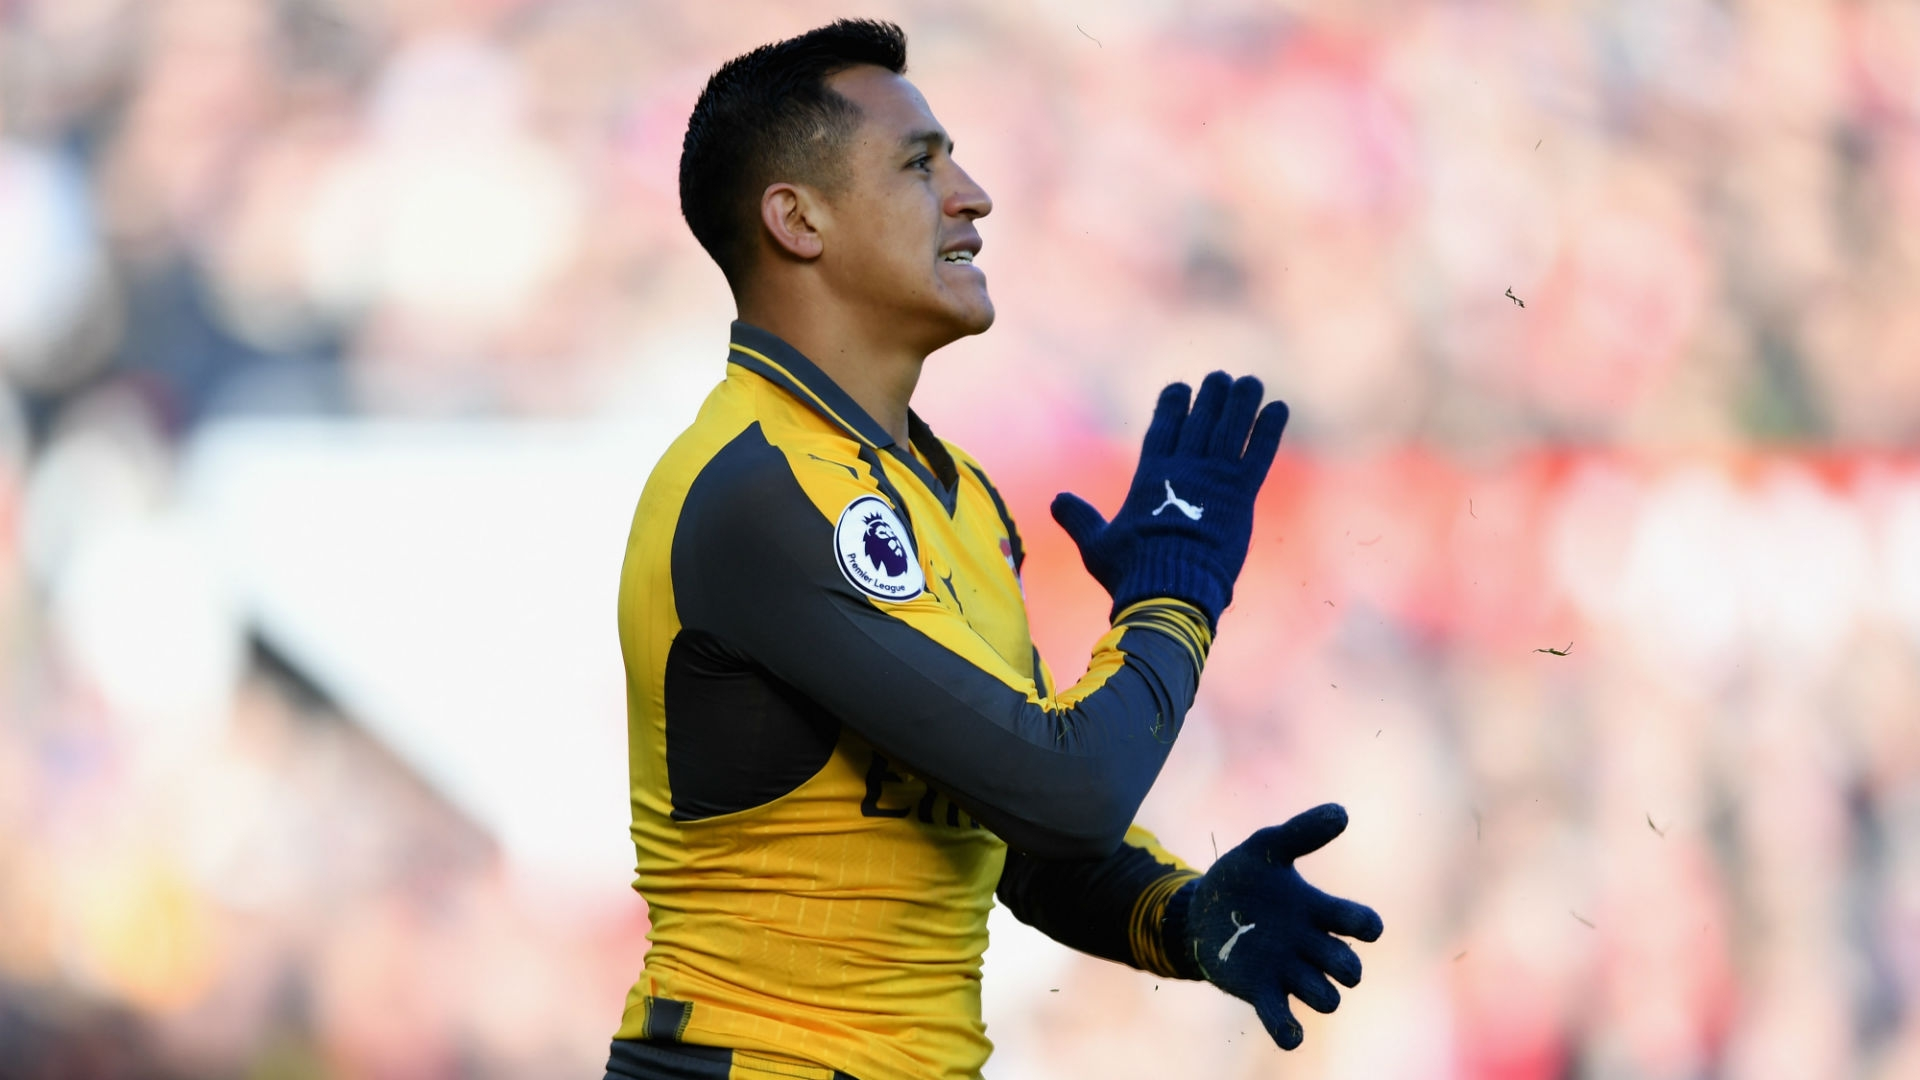 Arsenal manager Arsene Wenger has always been adamant about wanting to keep the team's most talked about players, Sanchez and Ozil, at the club.